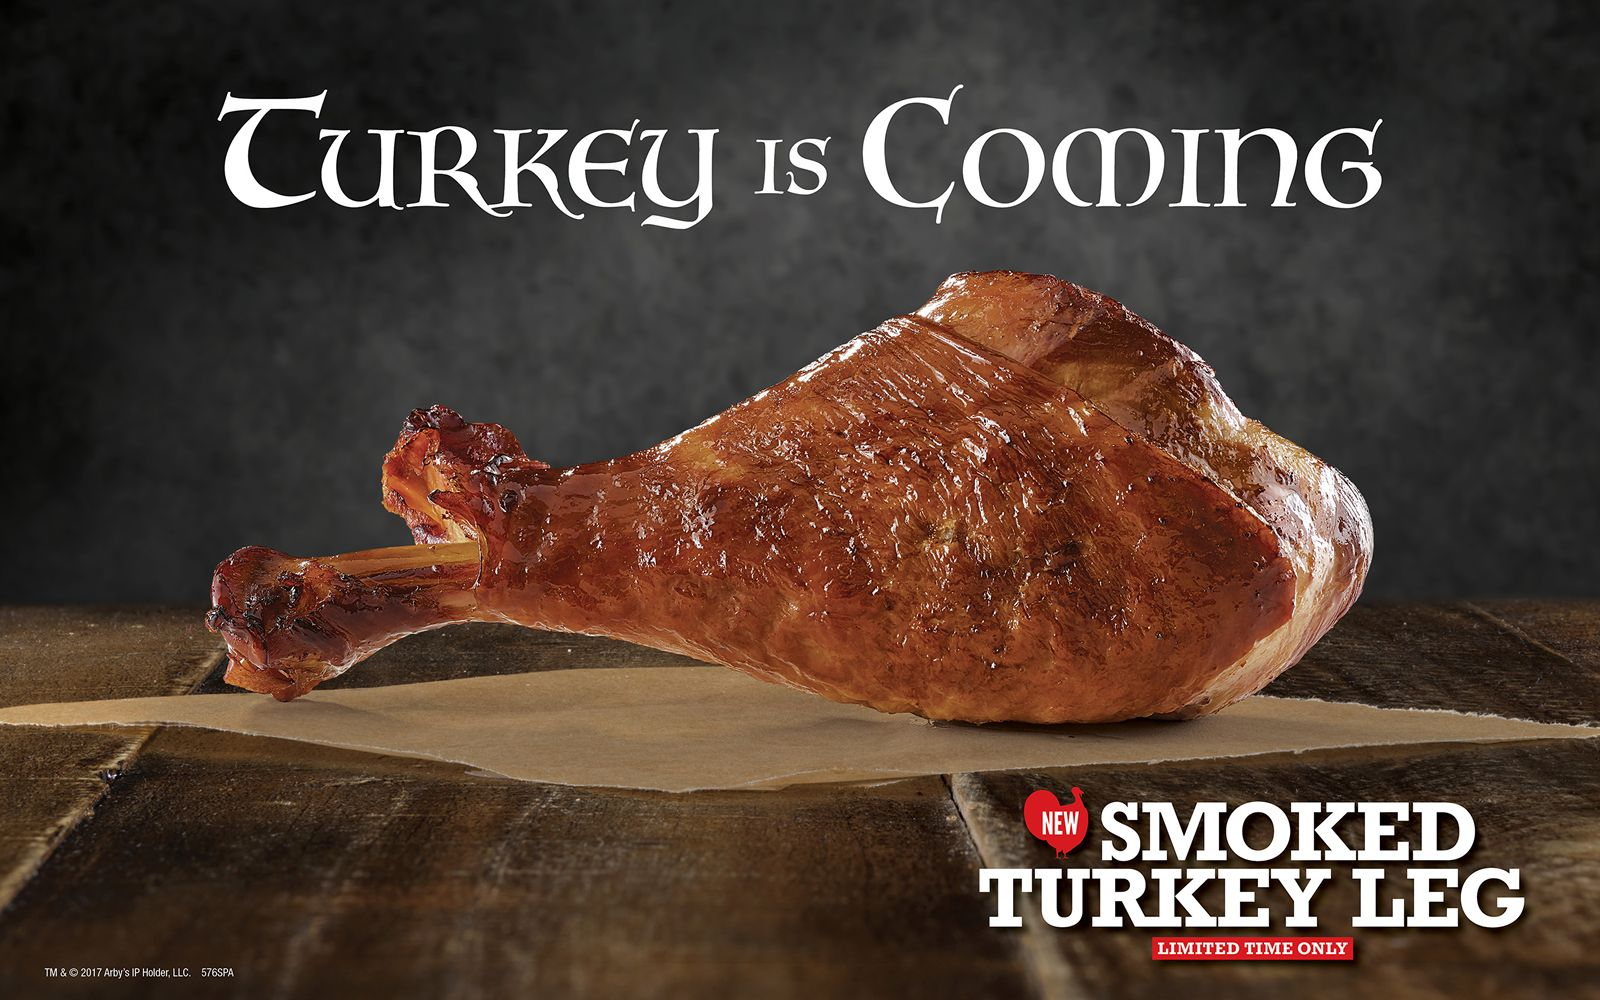 Turkey Is Coming - Arby's Casts Smoked Turkey Legs Upon the Kingdom